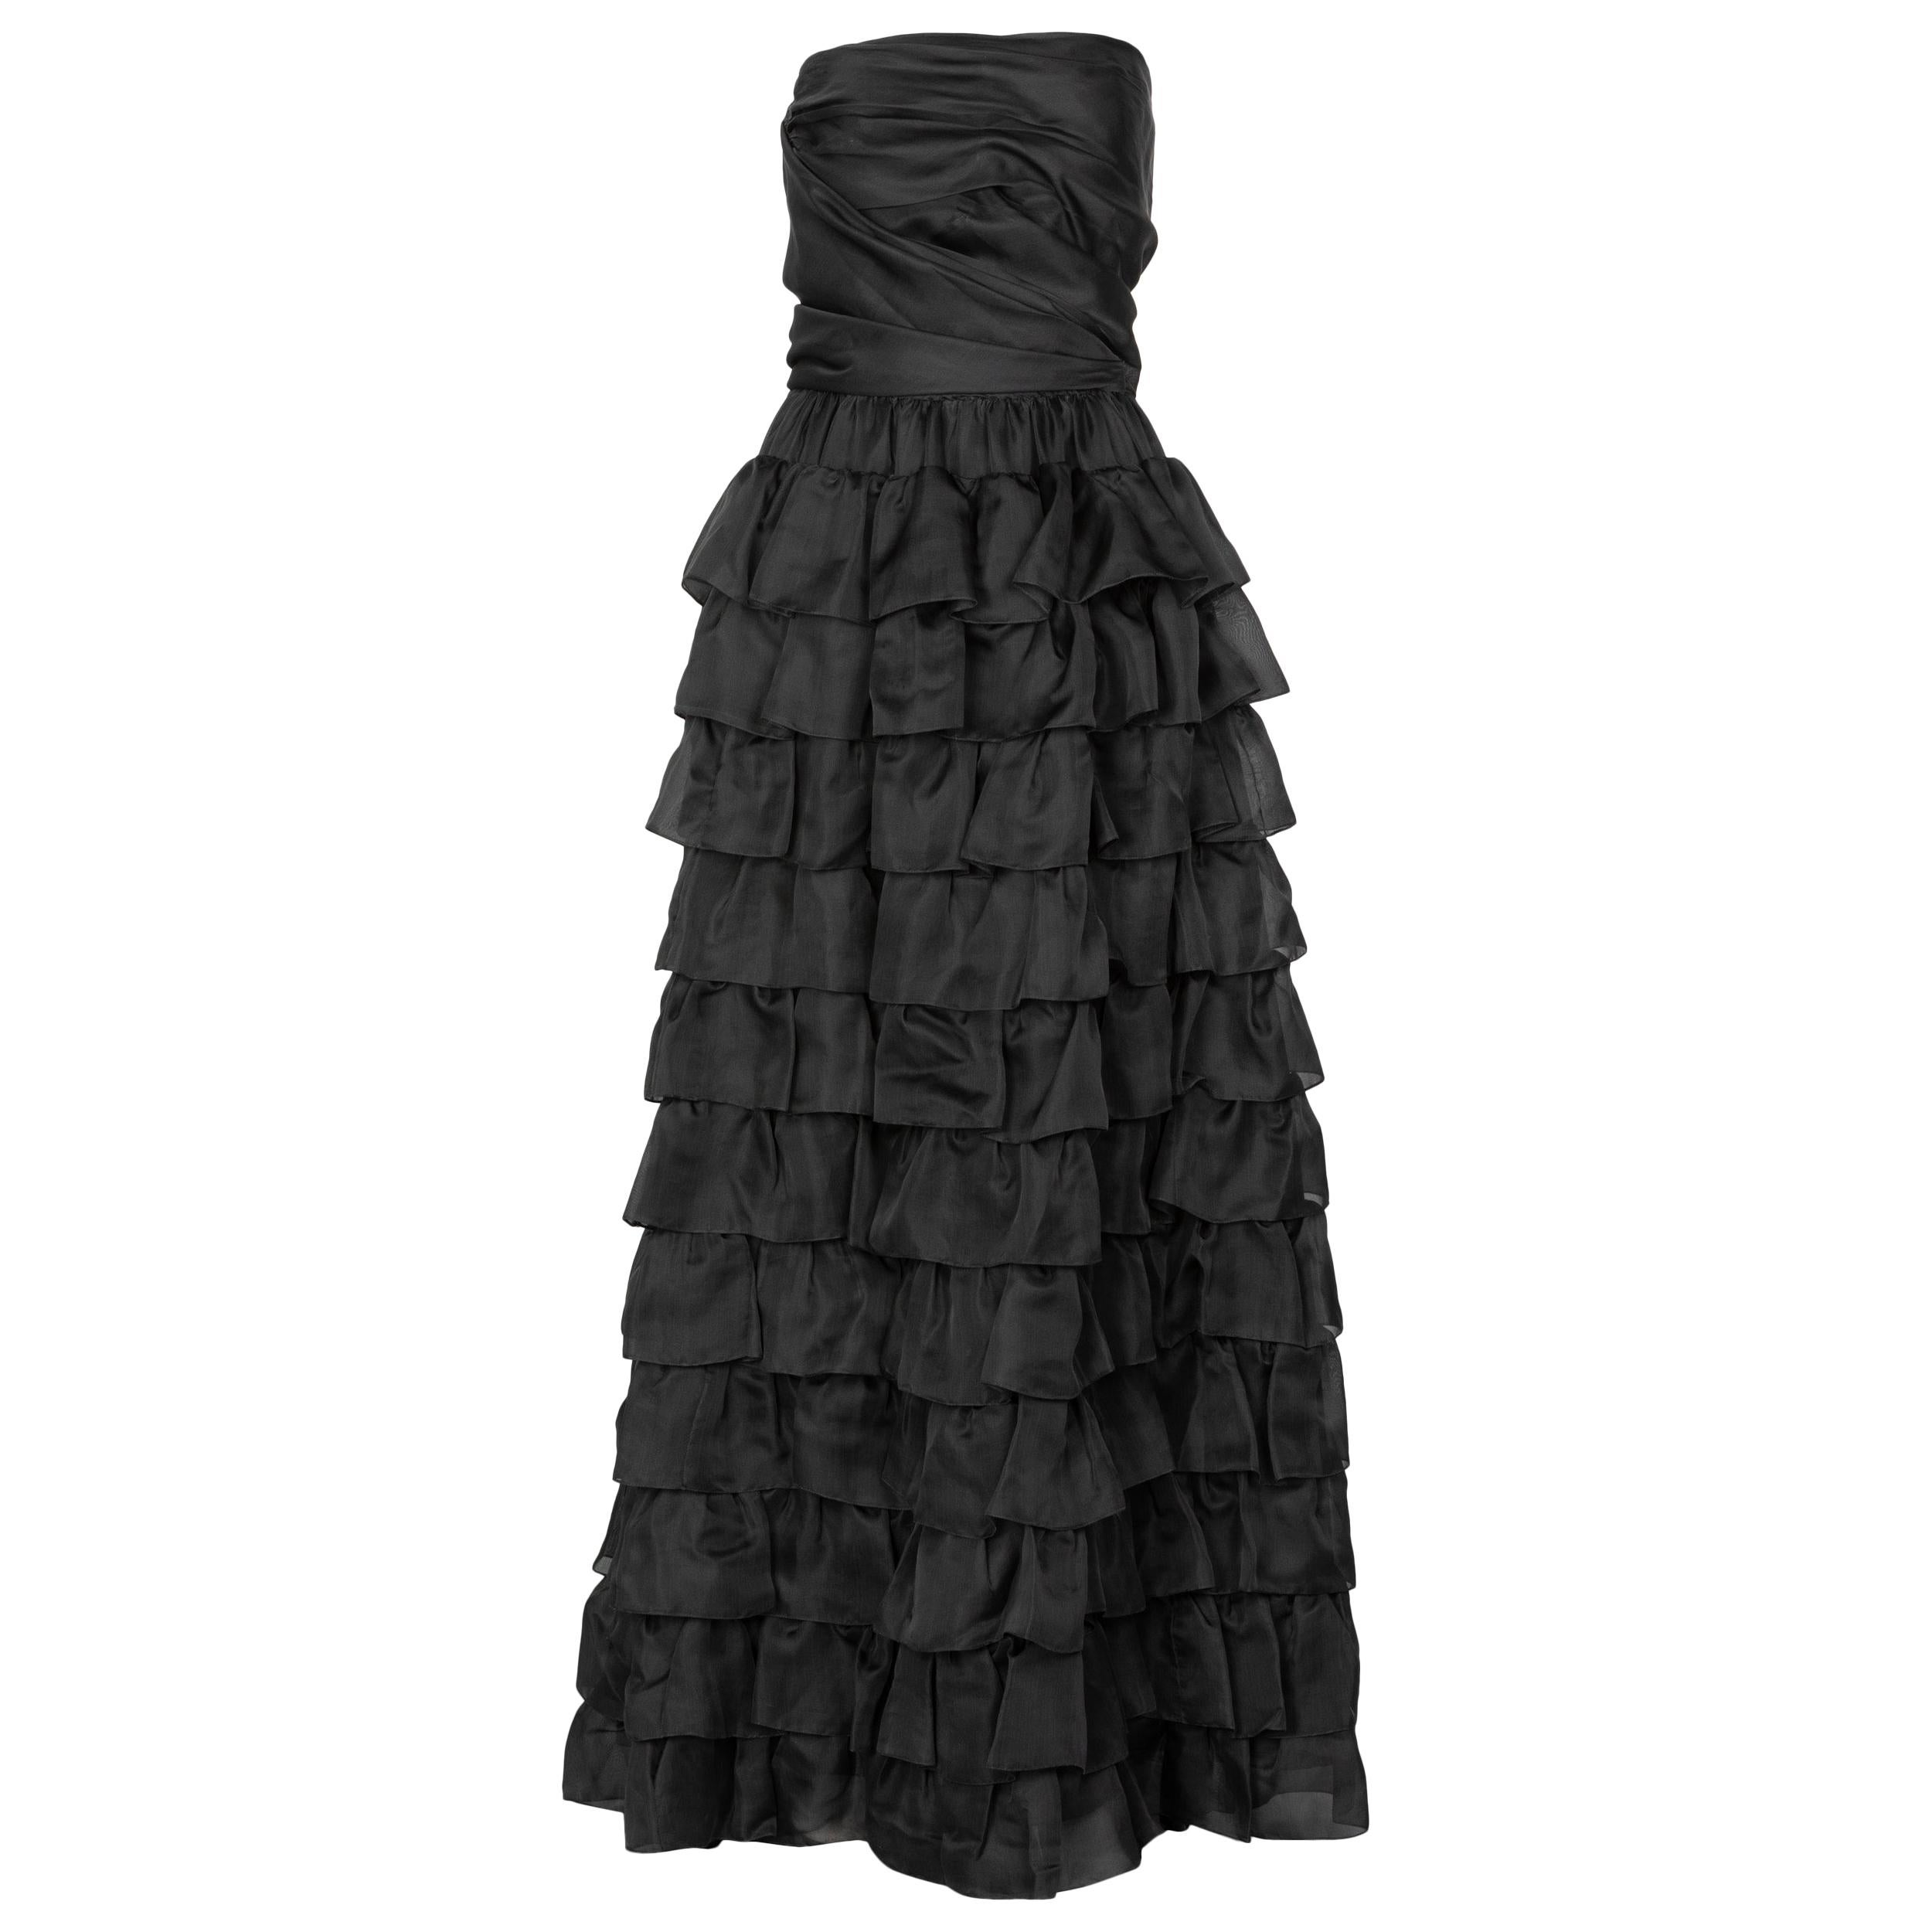 Vintage Givenchy Numbered Haute Couture Black Strapless Ruffled Gown, 1970s